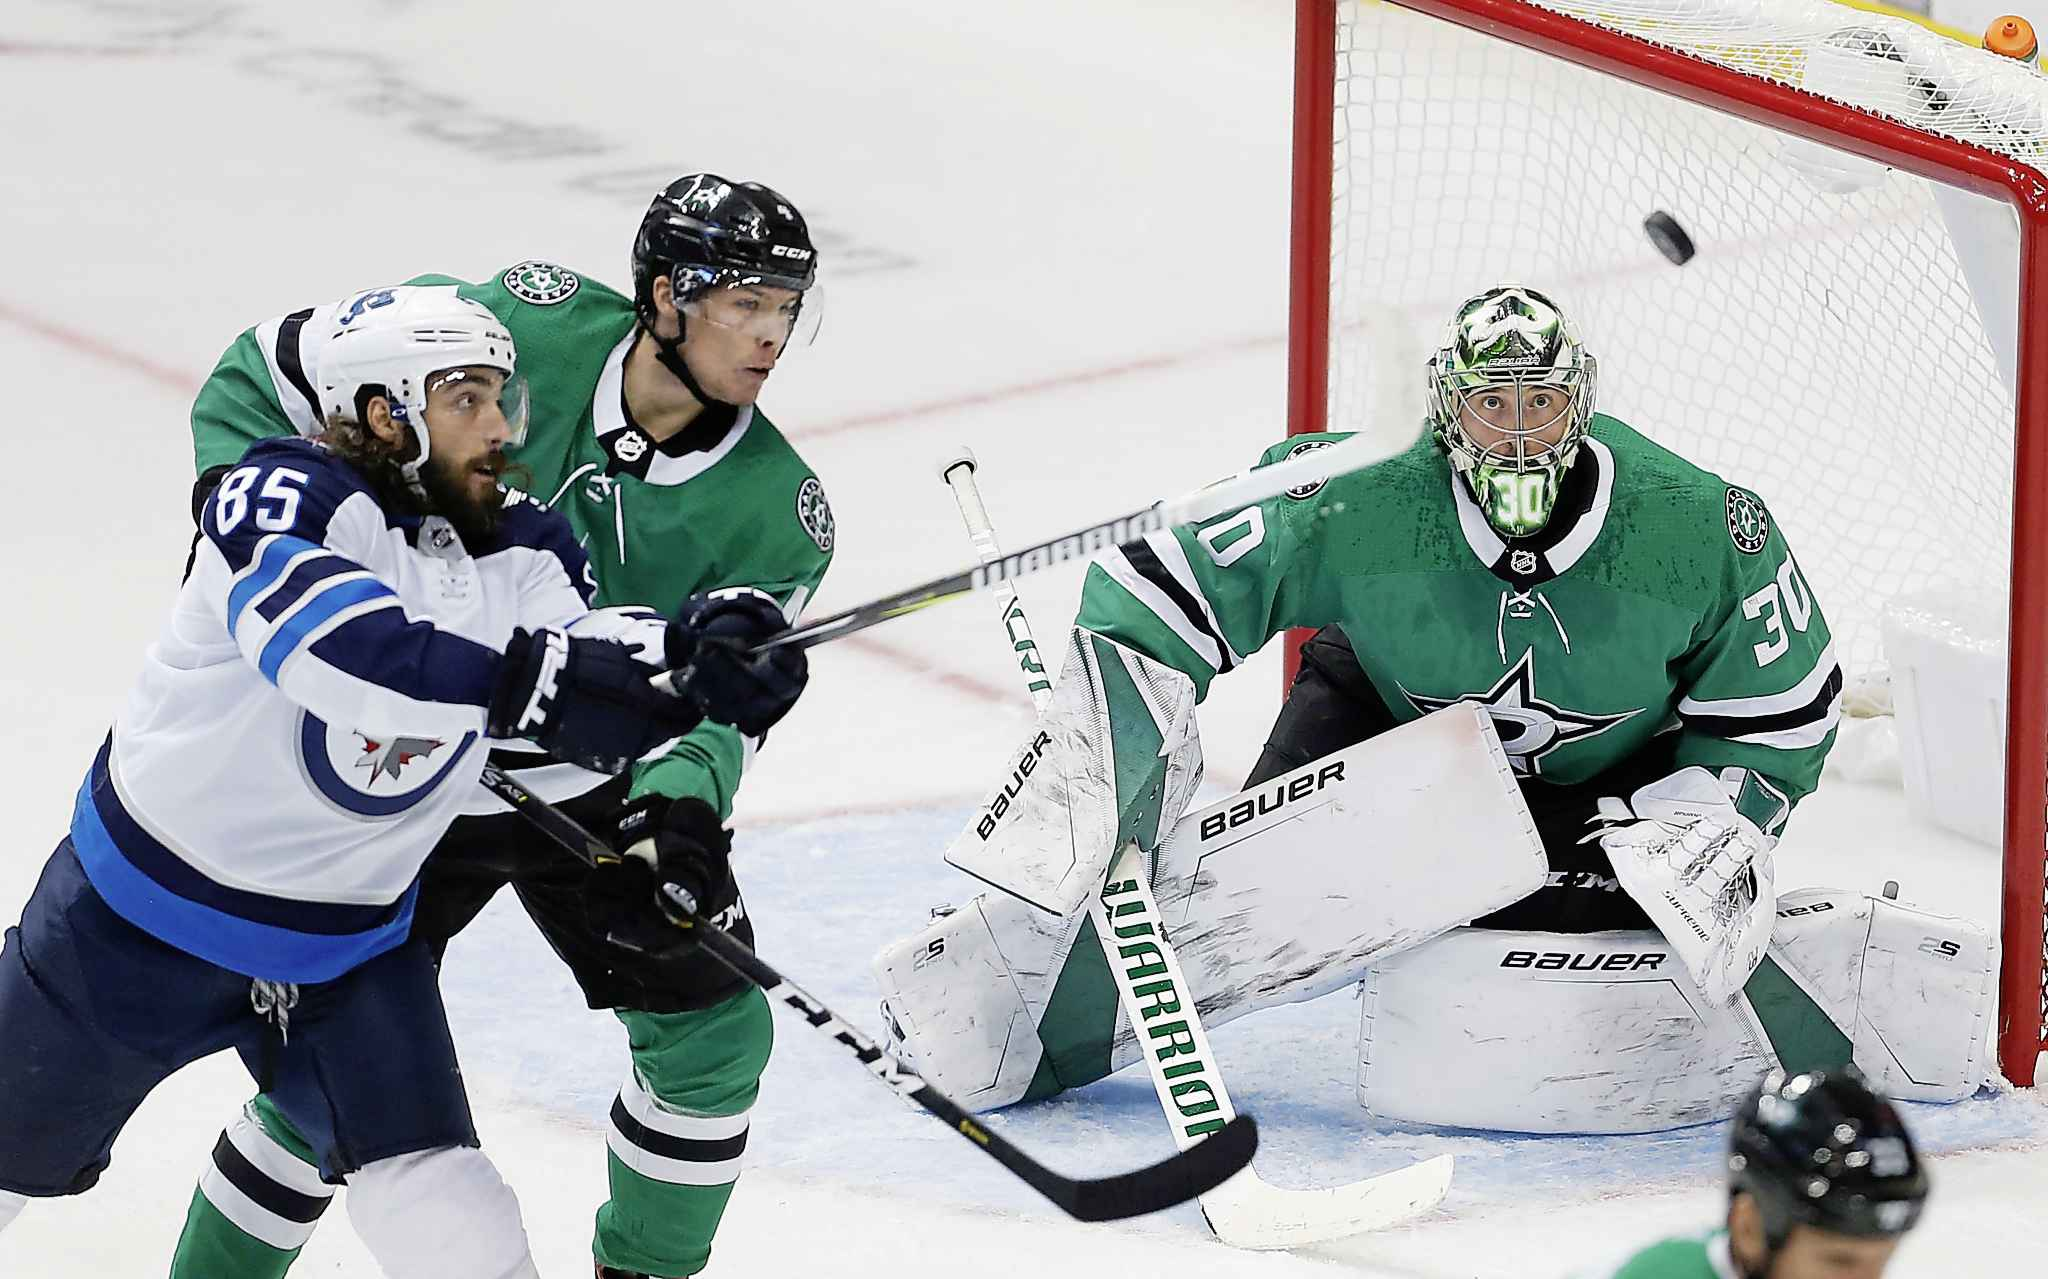 Winnipeg Jets forward Mathieu Perreault (85) reaches for an airborne puck as Dallas Stars defenseman Miro Heiskanen (4) goaltender Ben Bishop (30) defend during the first period of an NHL hockey game, Saturday, Oct. 6, 2018, in Dallas. (AP Photo/Brandon Wade)